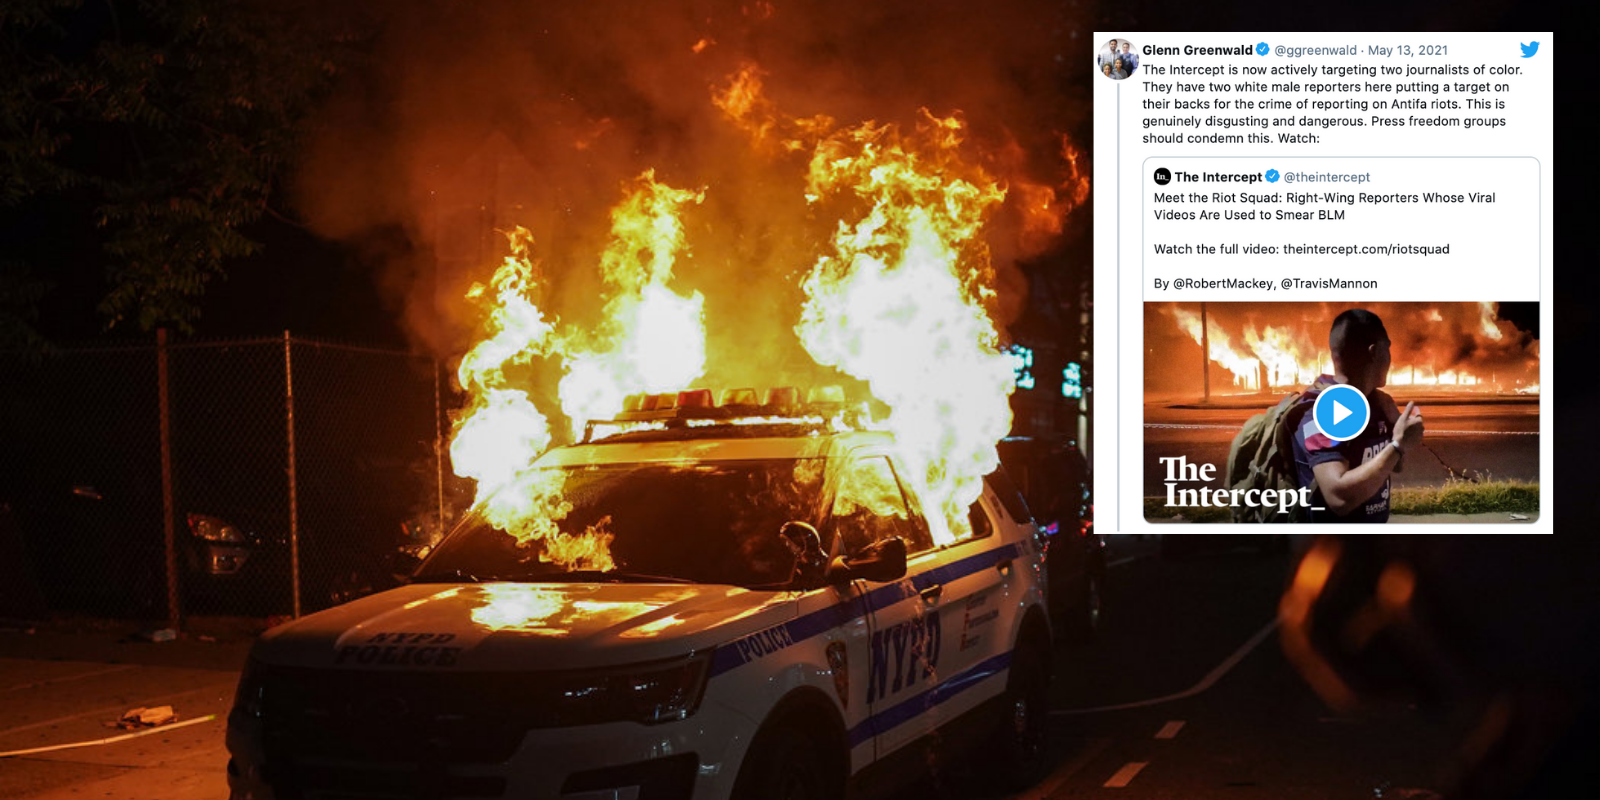 Former news outlet The Intercept smears actual journalists for covering BLM-Antifa violence